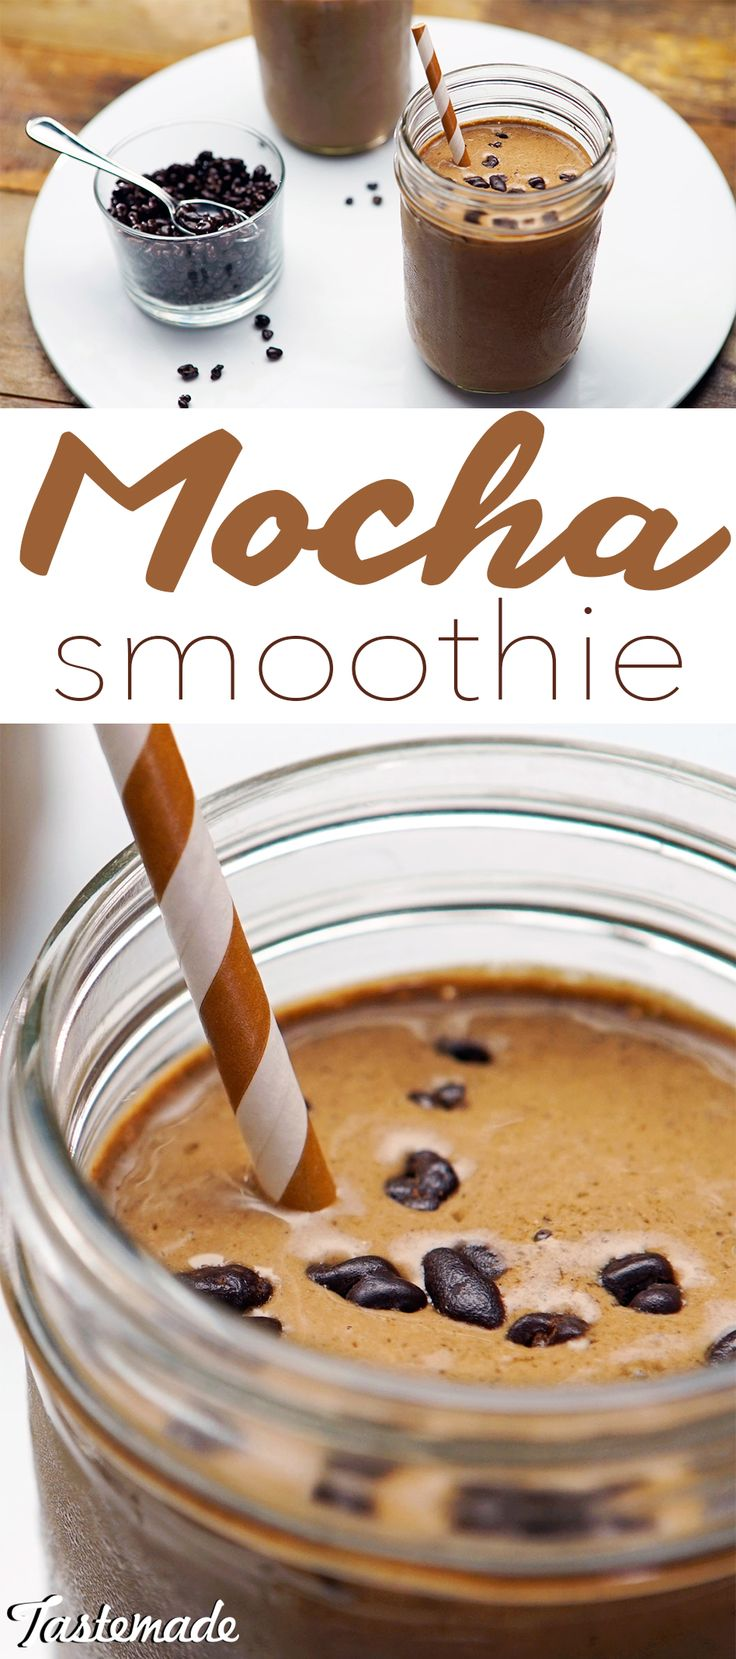 With chia seeds and cocao nibs, this frozen coffee drink is not only tasty, but healthy too.